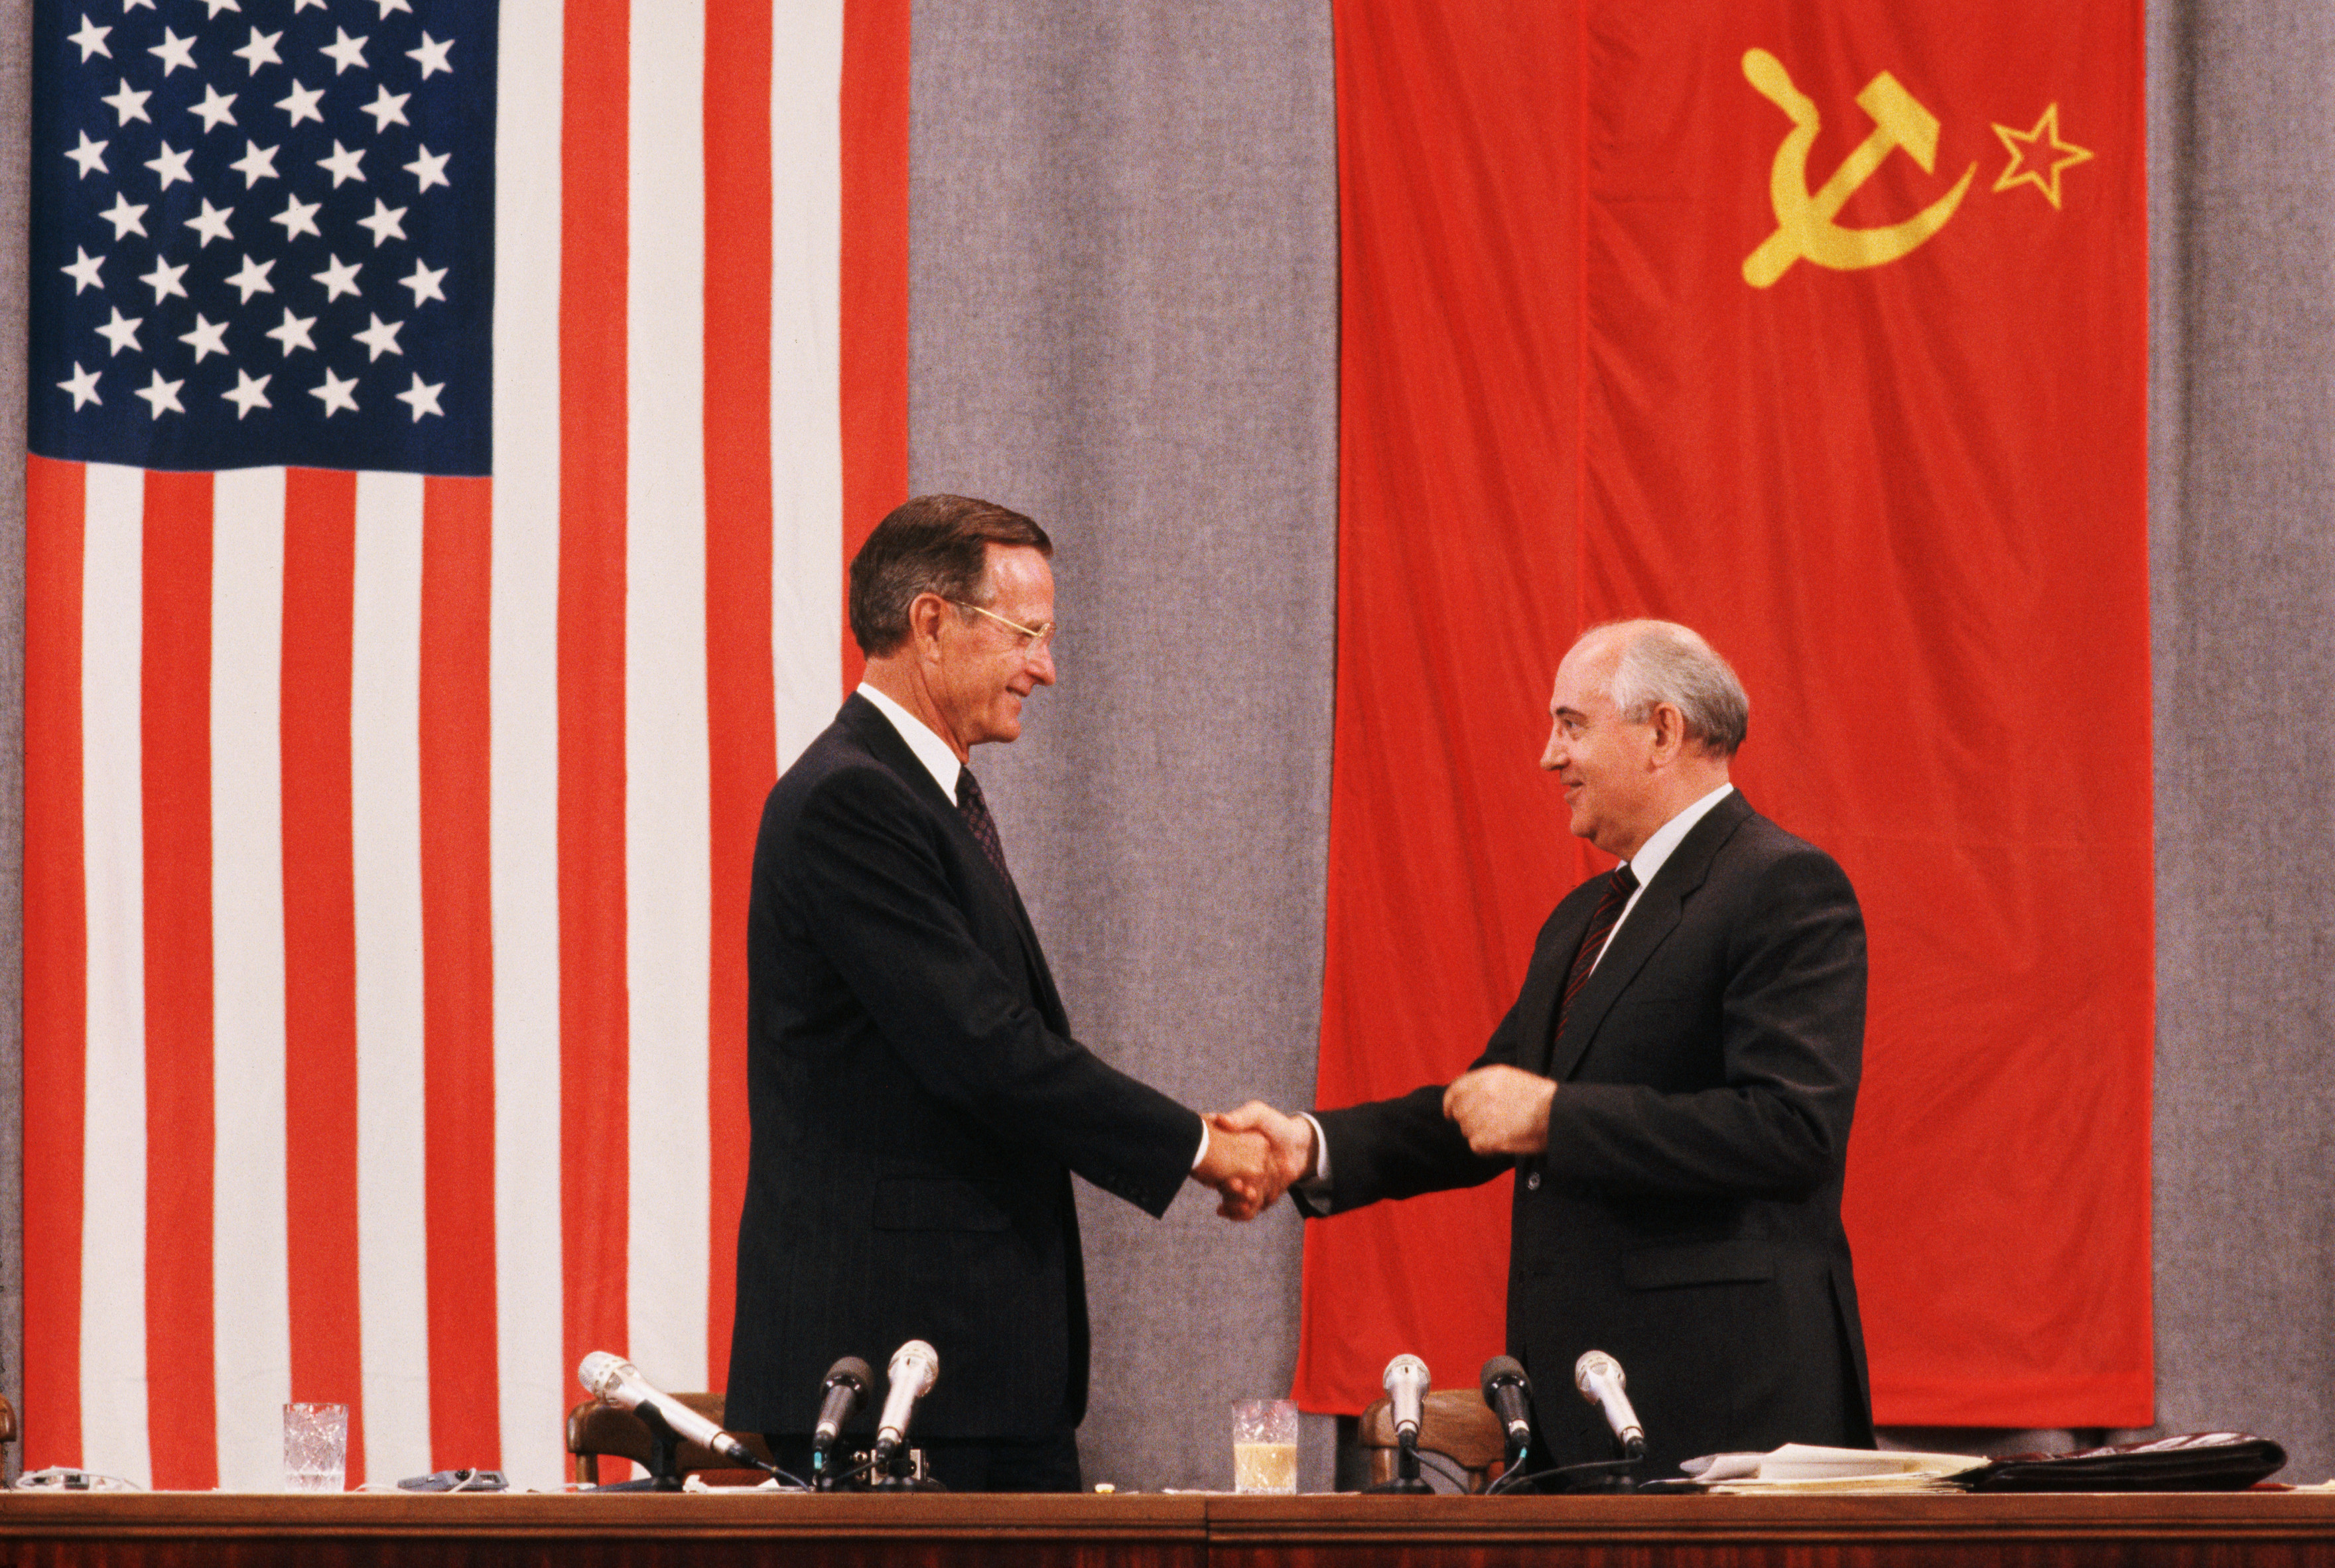 Presidents George H.W. Bush and Mikhail Gorbachev shake hands at the end of a press conference about the peace summit in Moscow on July 31, 1991.